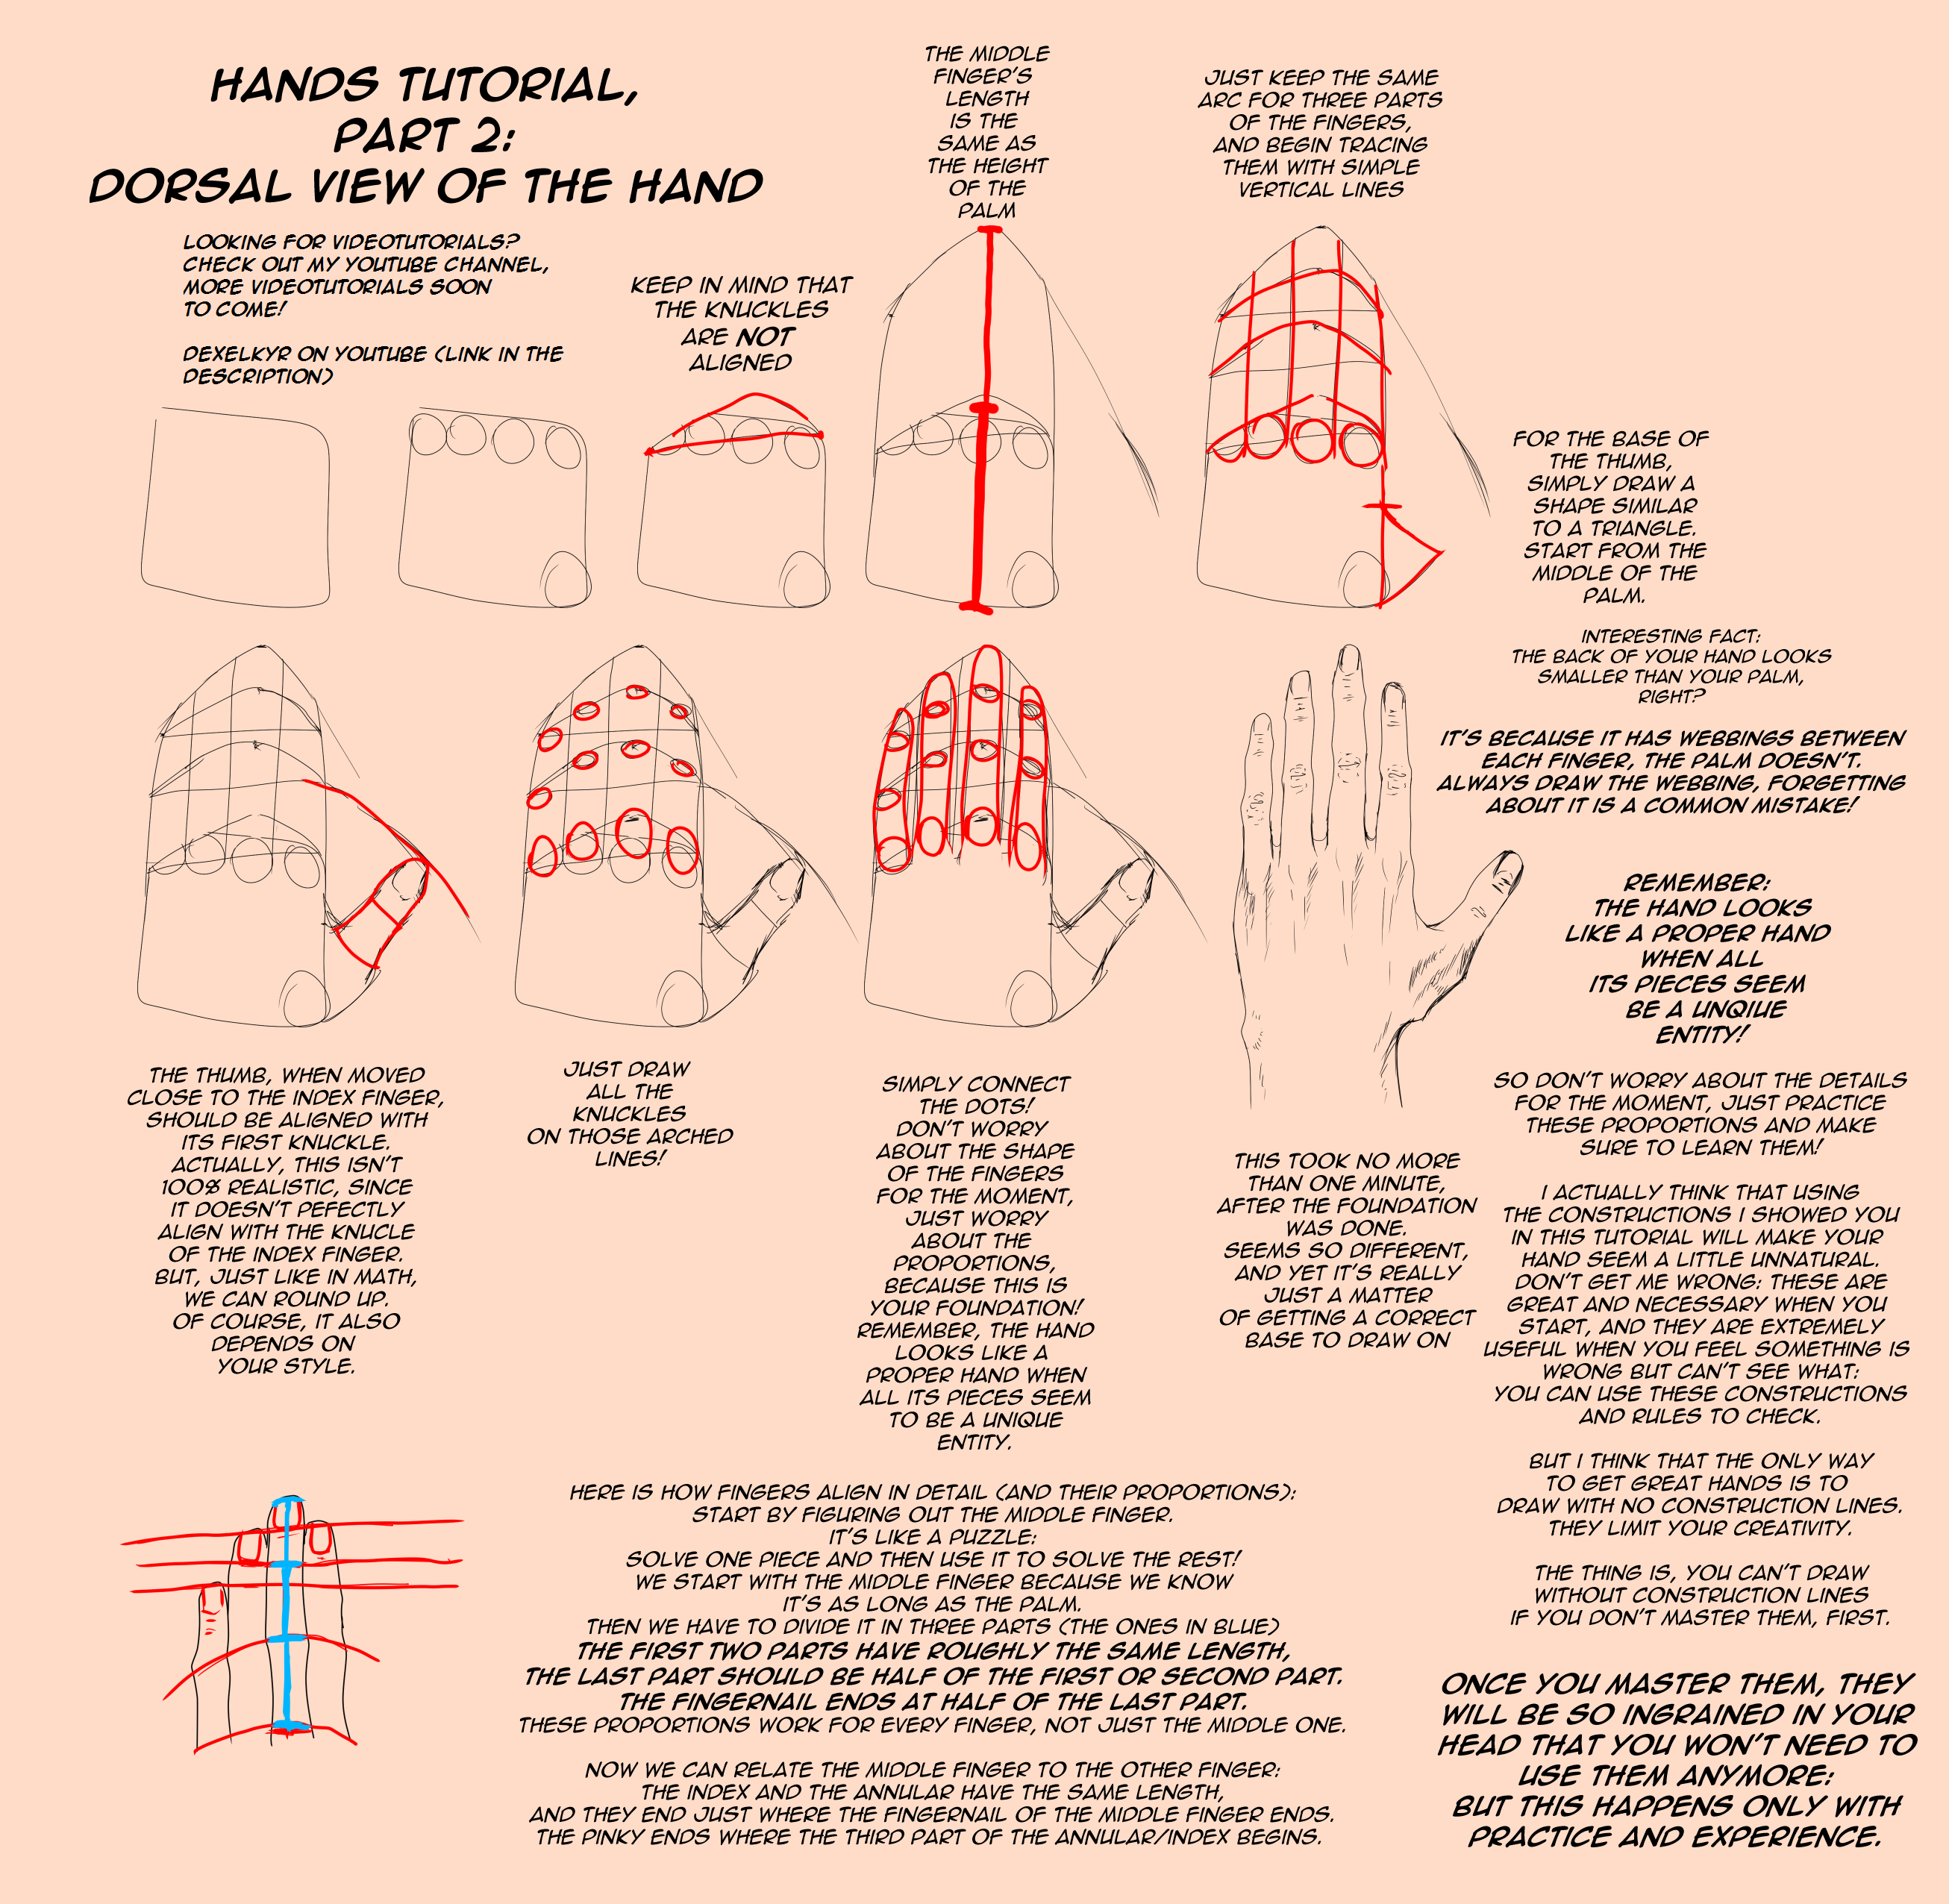 HANDS TUTORIAL, Dorsal View [Part 2] by Dex91 on DeviantArt